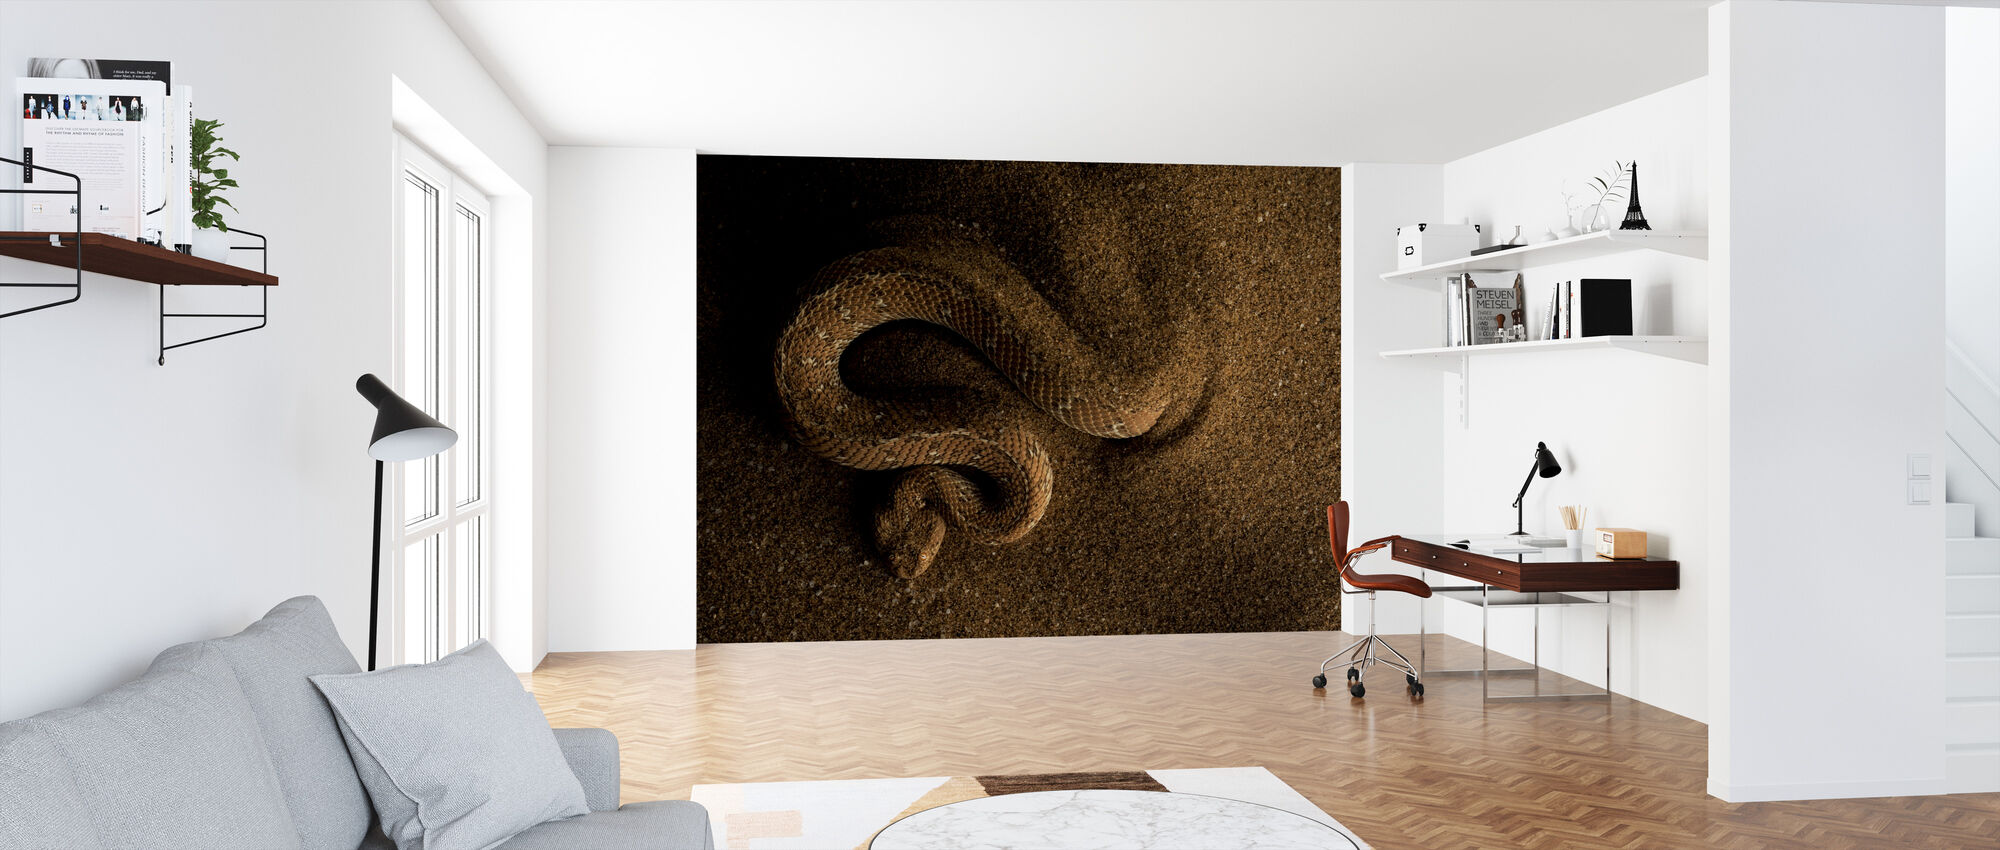 Peringuey's Adder - Wallpaper - Office